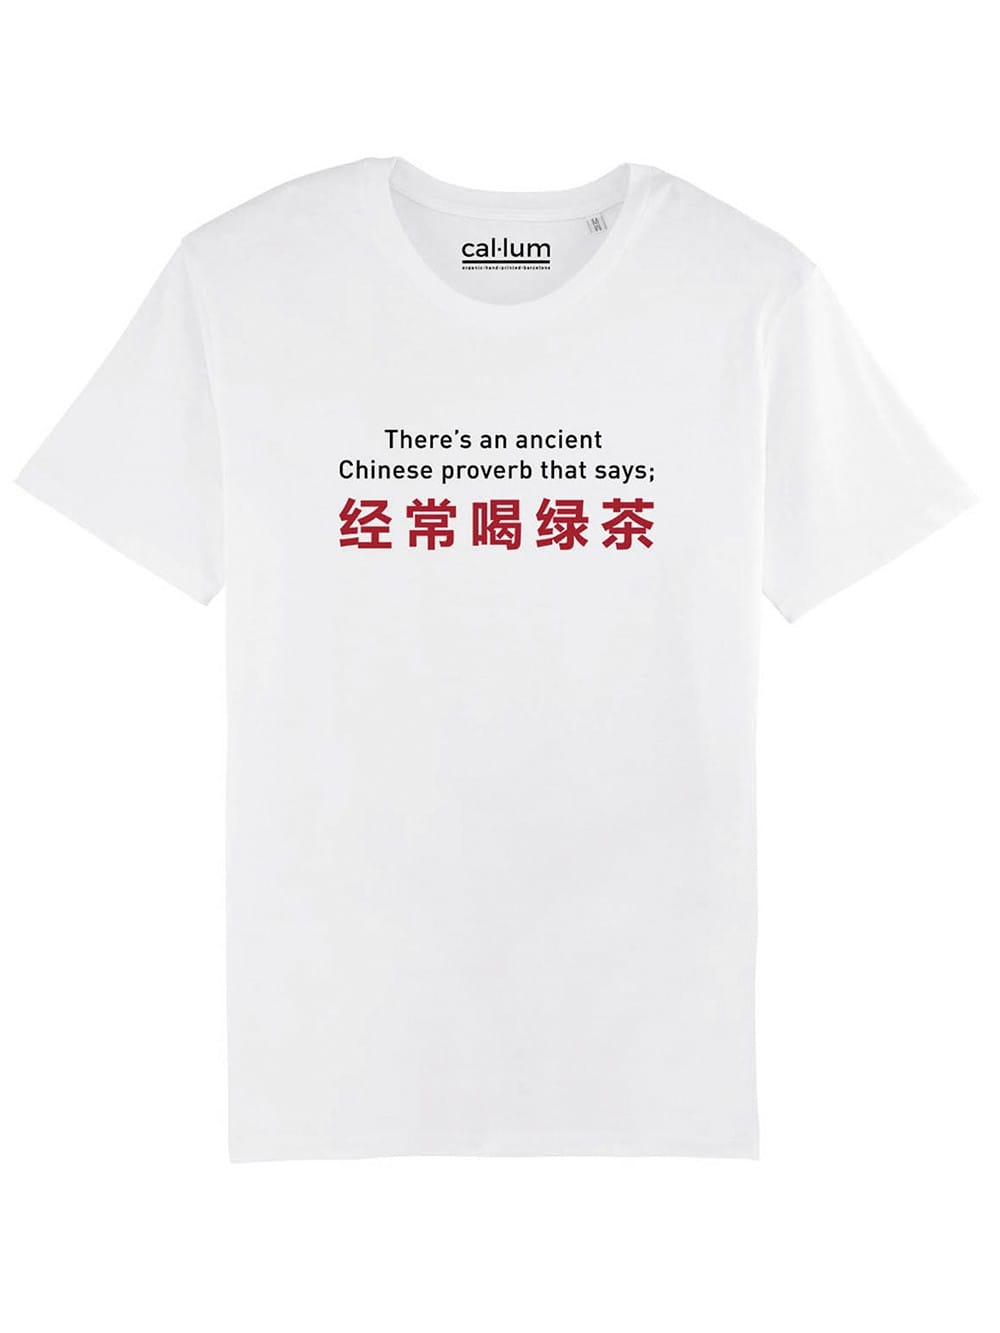 Organic cotton t-shirt Proverb